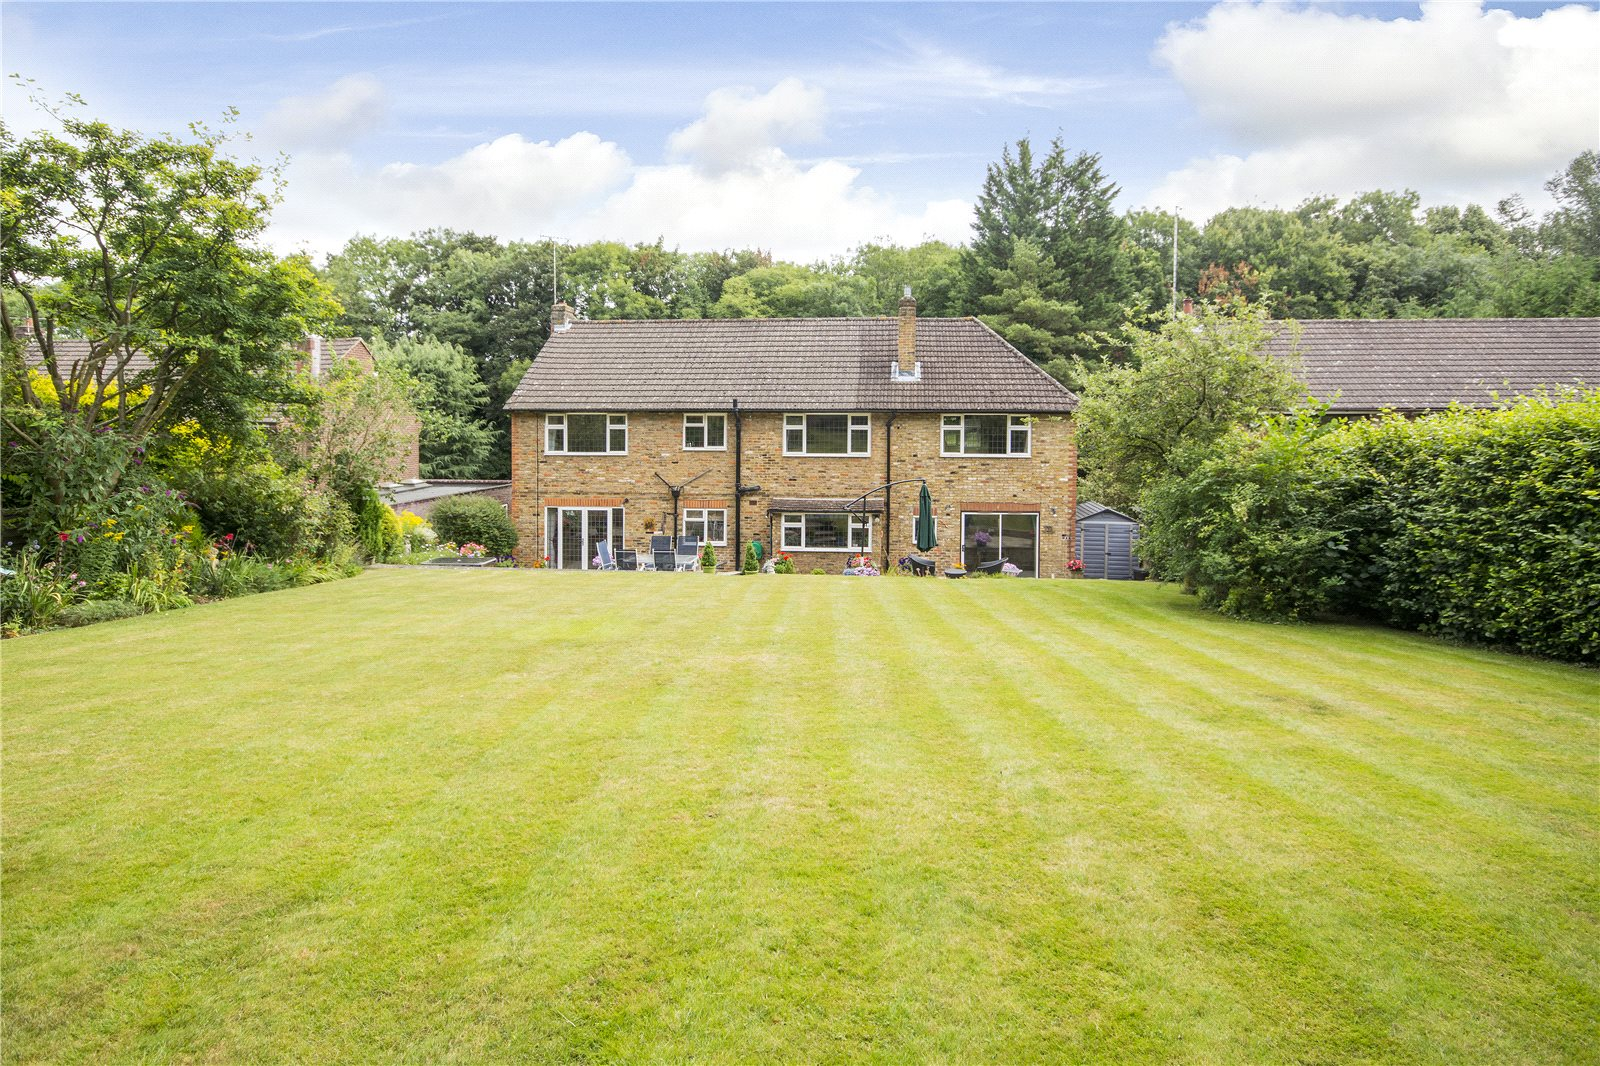 Additional photo for property listing at Claydon End, Chalfont St Peter, Gerrards Cross, Buckinghamshire, SL9 Gerrards Cross, イギリス